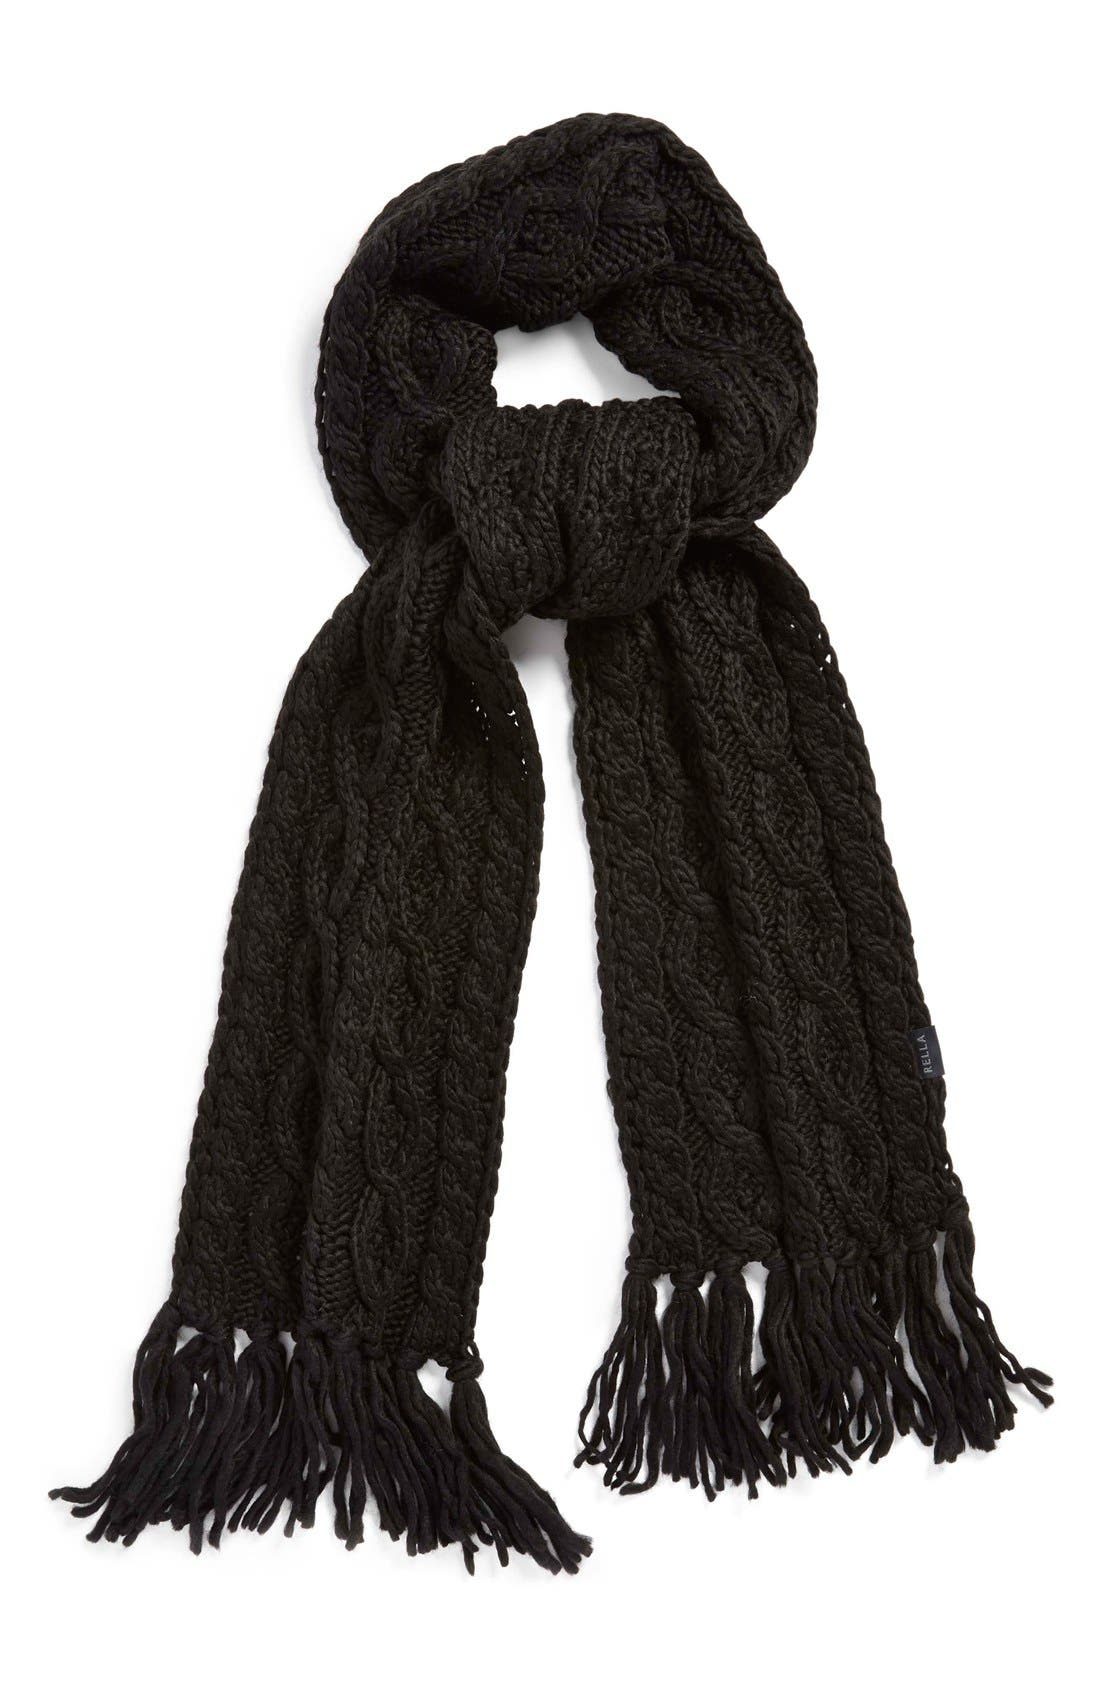 'Betto' Cable Knit Merino Wool Blend Scarf,                             Main thumbnail 1, color,                             001